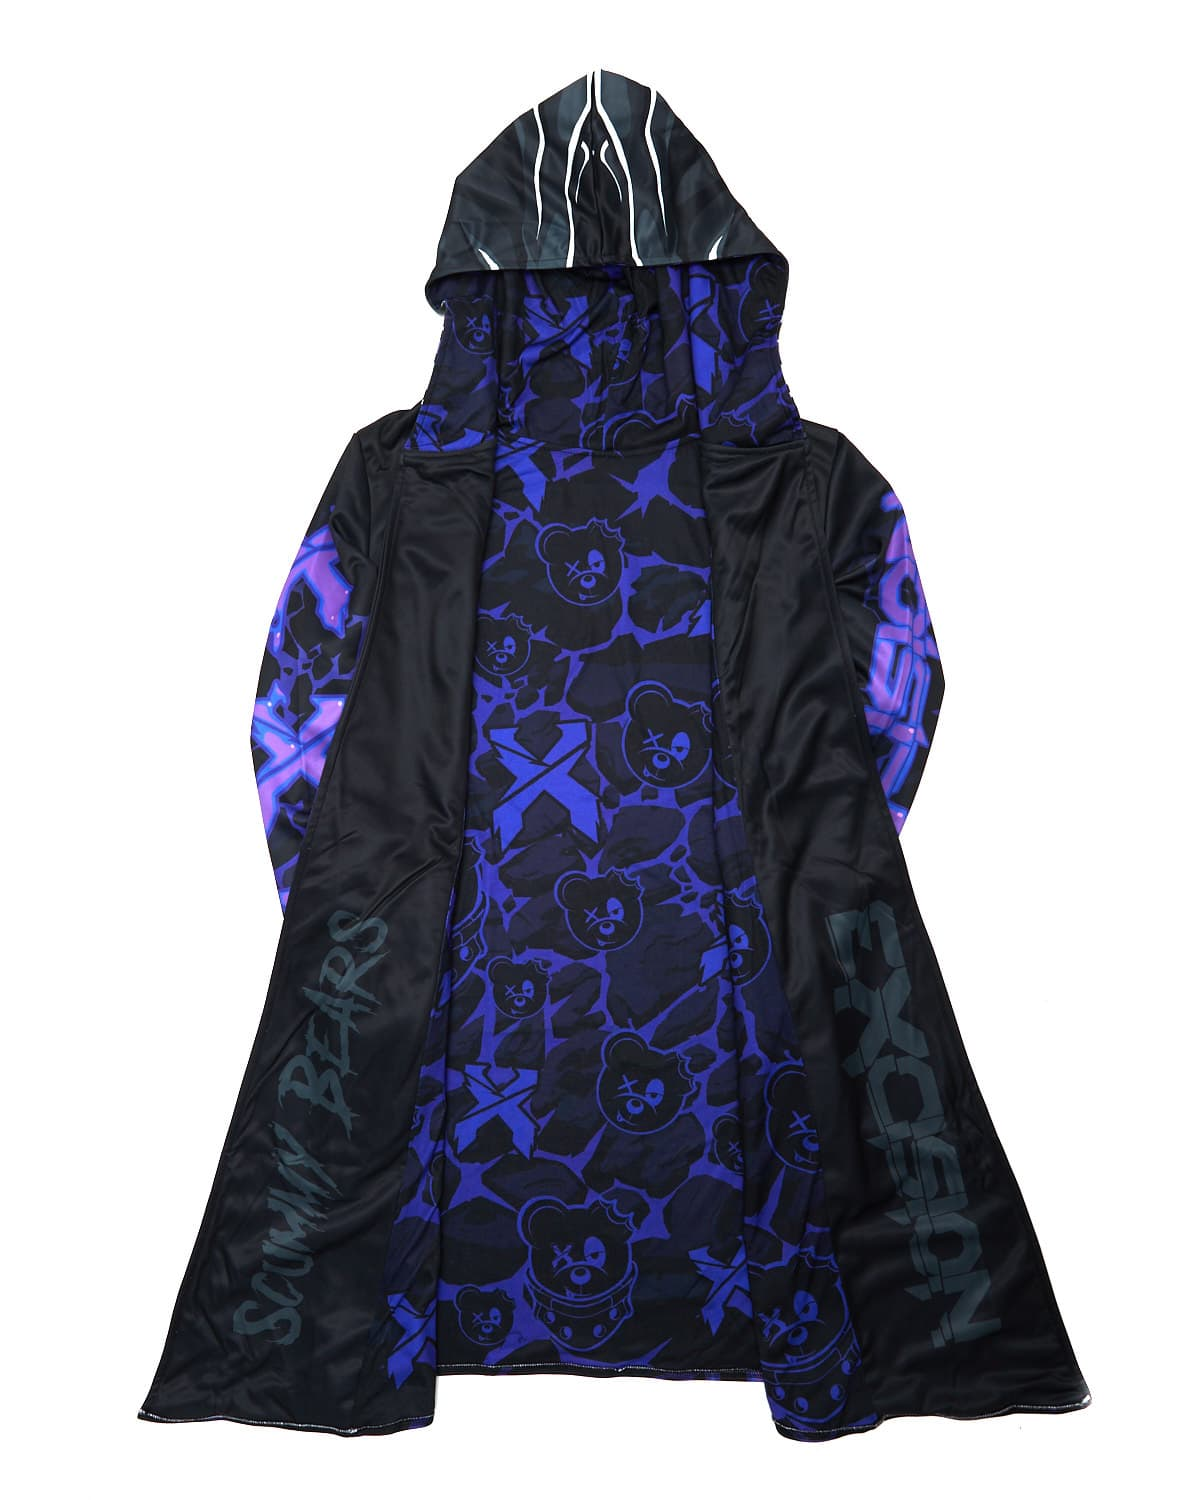 Excision x Scummy Bears Dye Sub Cloak - Purple